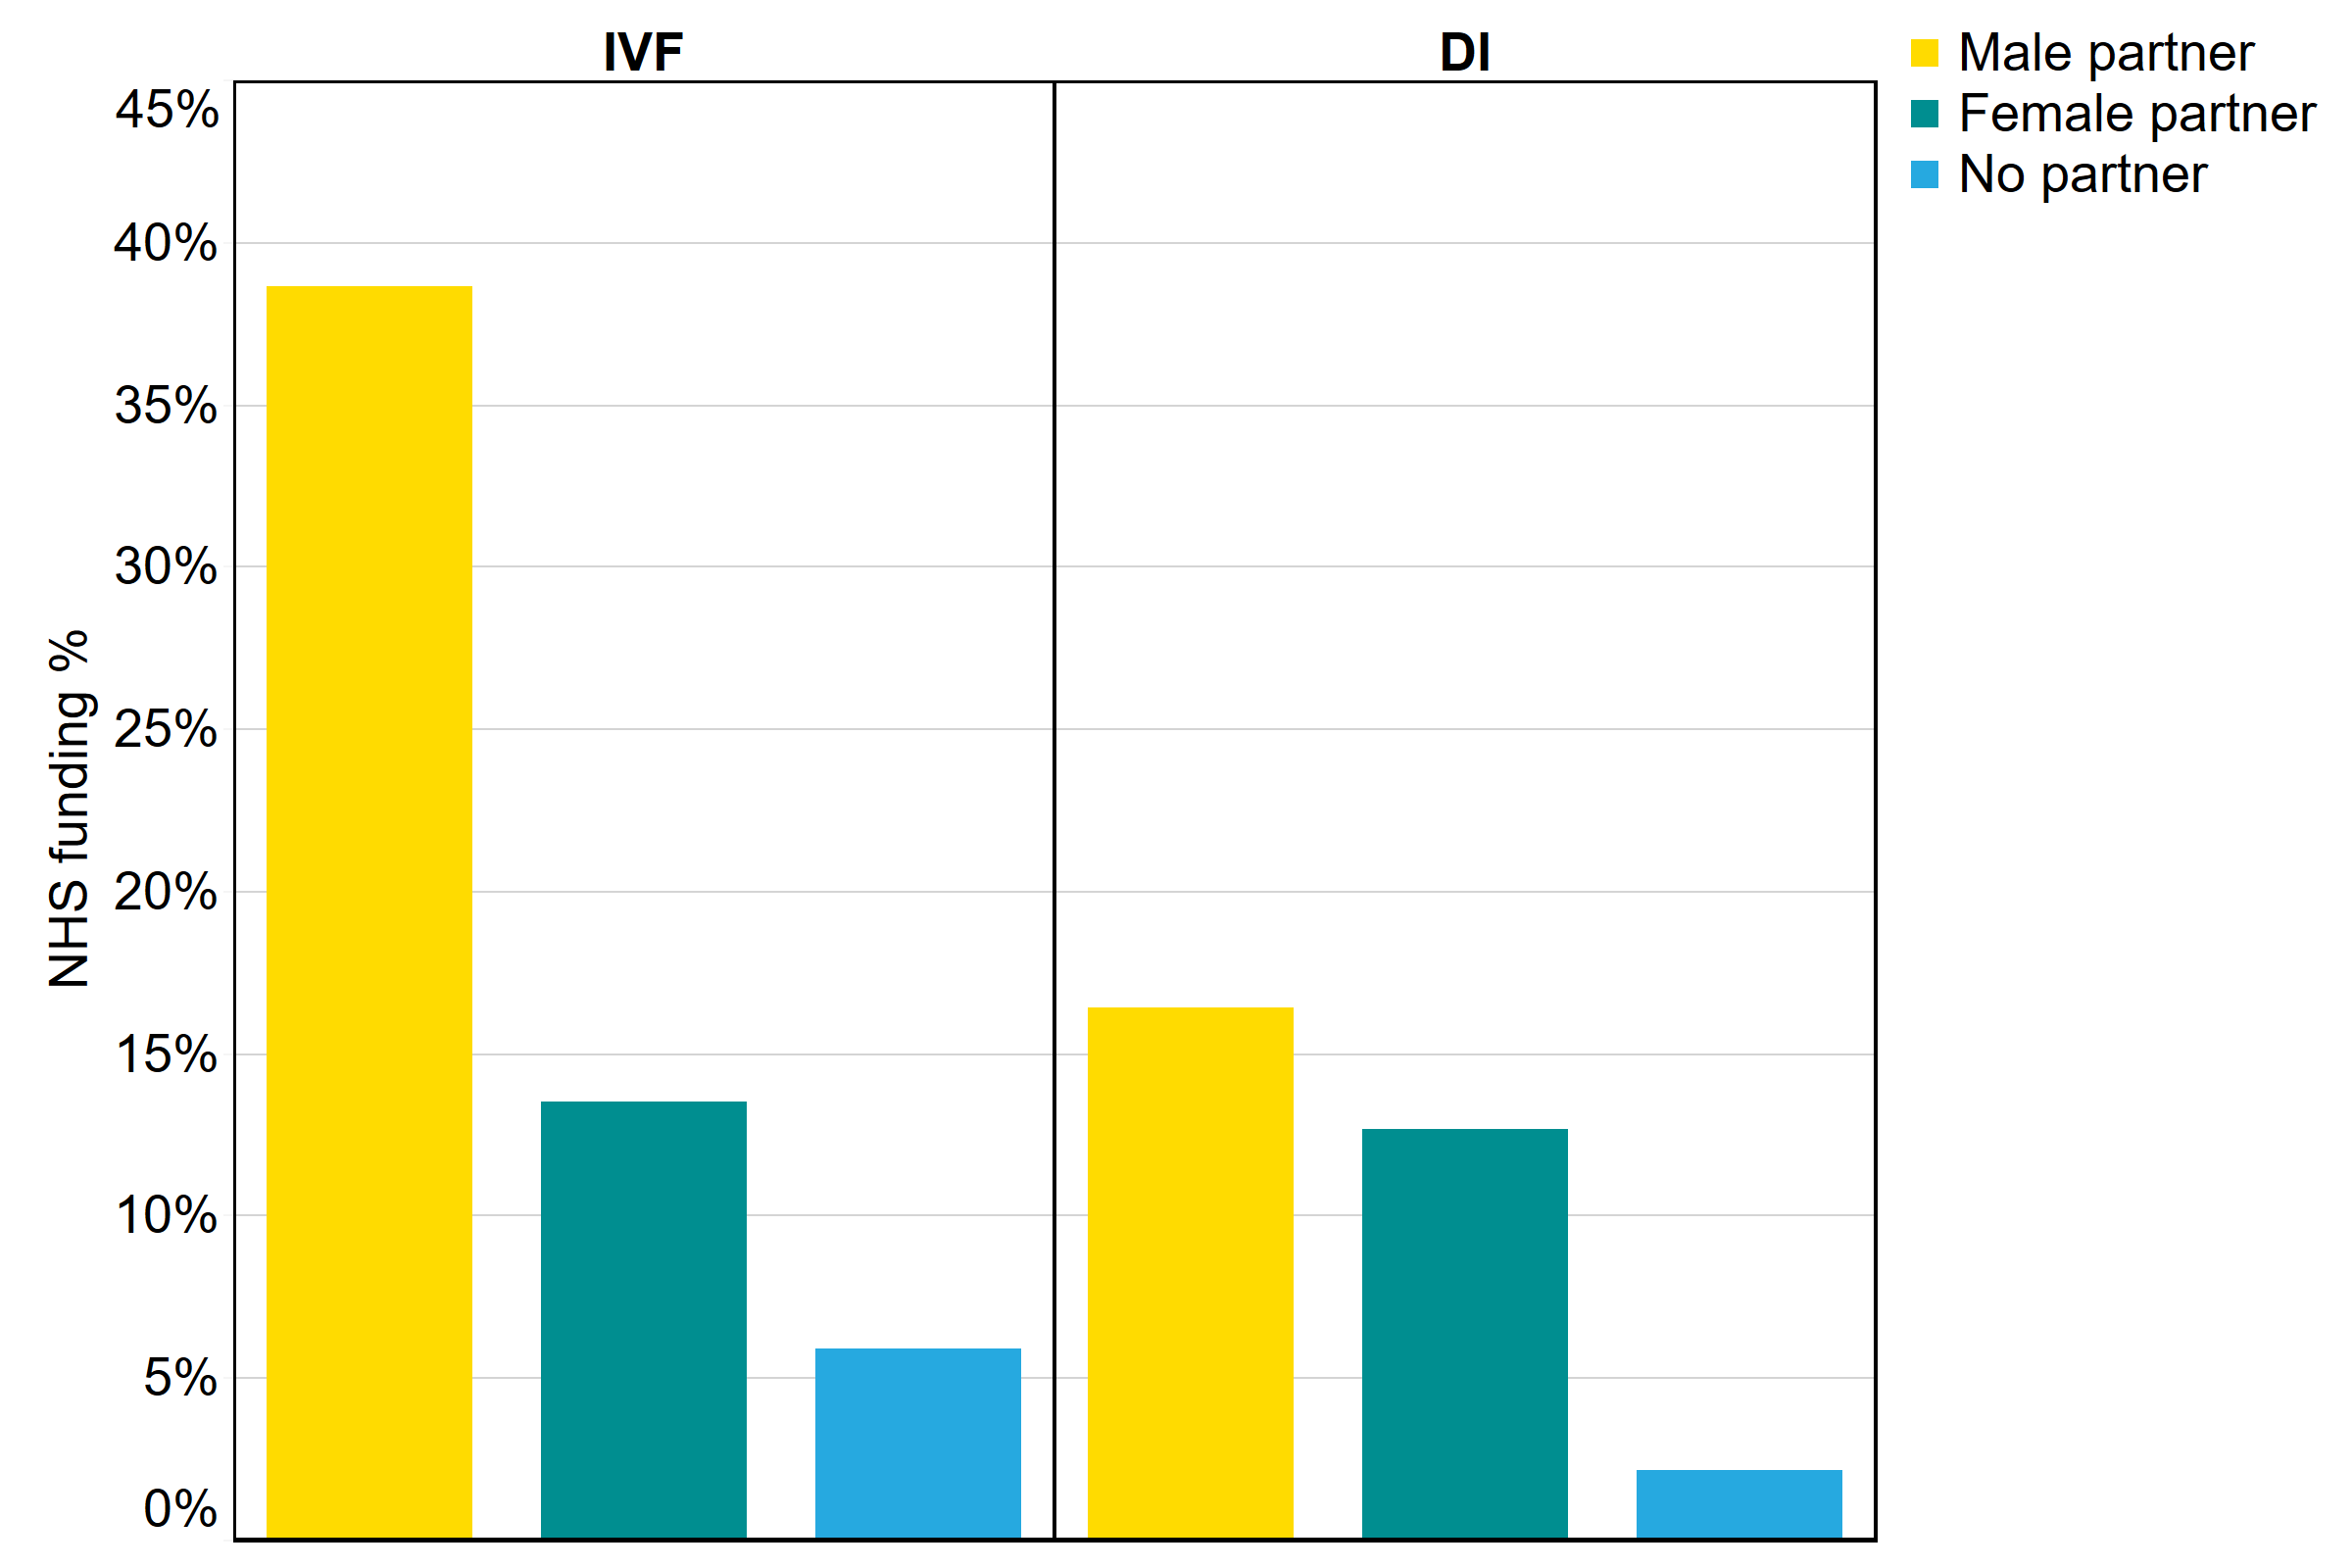 [1. Label] NHS-funding proportion for IVF and DI cycles by partner type in UK, 2018. [2. Construction] This bar chart shows the proportion of IVF and DI cycles funded by the NHS by partner type. [3. Summary] Funded cycles were more common for patients in heterosexual relationships at 29% for IVF and 6% for DI cycles, followed by patients in female same-sex relationships at 14% for IVF and 13% for DI cycles. Single patients had the fewest proportion of cycles funded by the NHS at 6% for IVF and 2% for DI. [4. Data] Male partner IVF 39%, Male partner DI 16%, Female partner IVF 14%, Female partner DI 13%, No partner IVF 6%, No partner DI 2%.